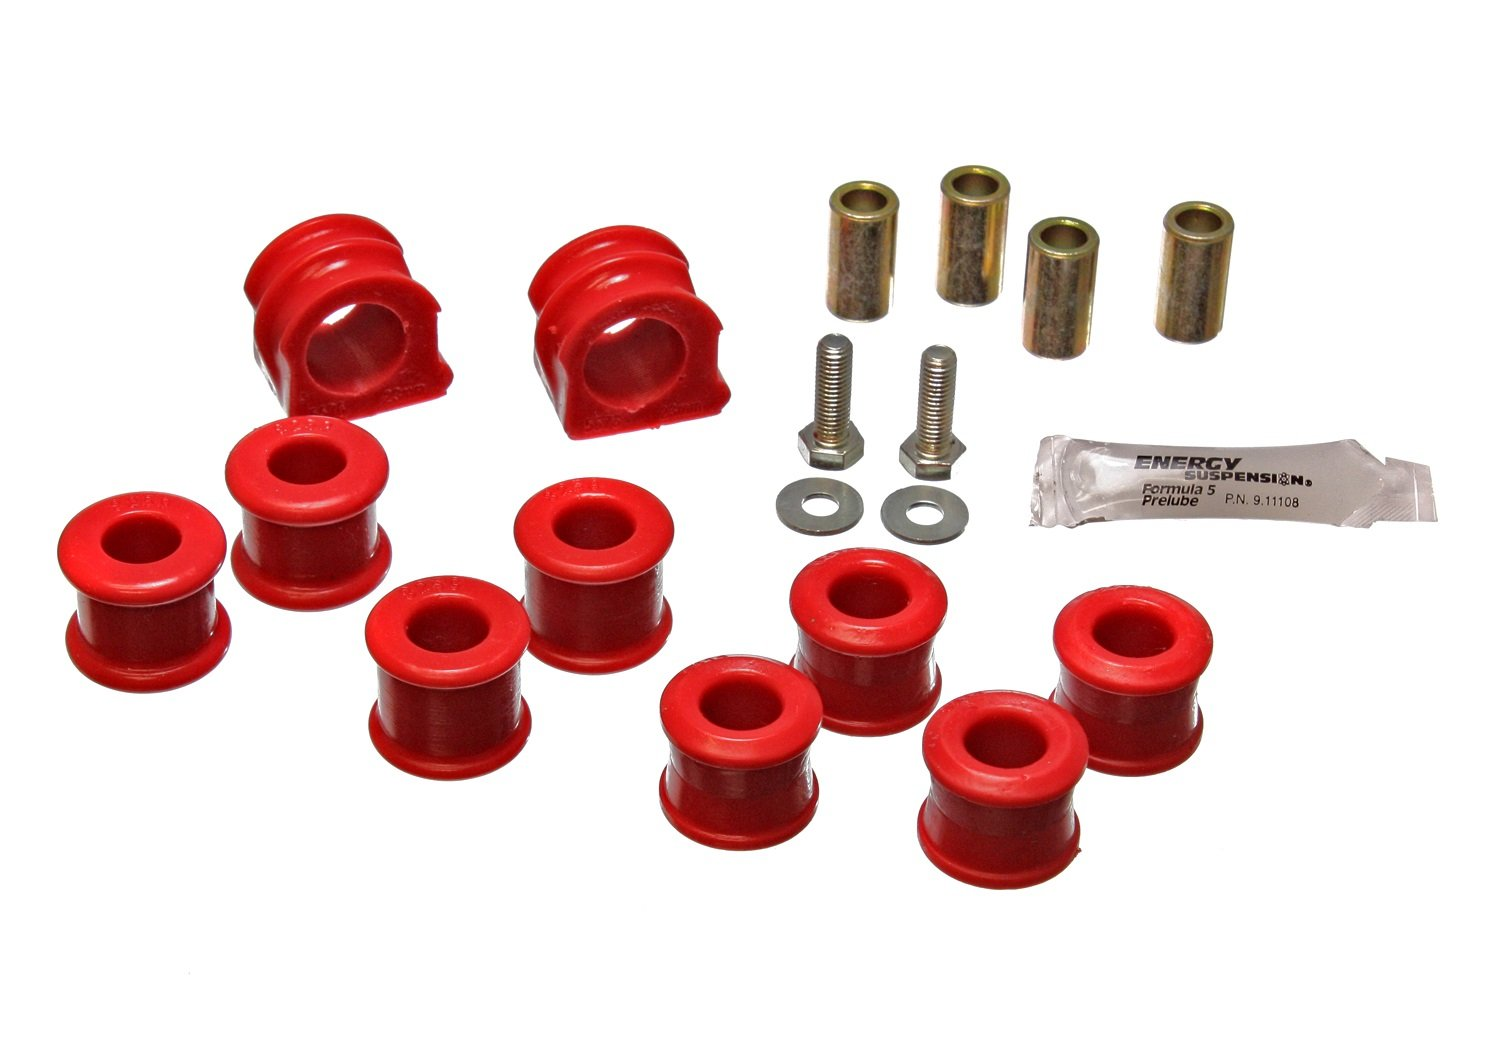 Energy Suspension 15.5106R VW 23 MM FRT SWAY BAR SET